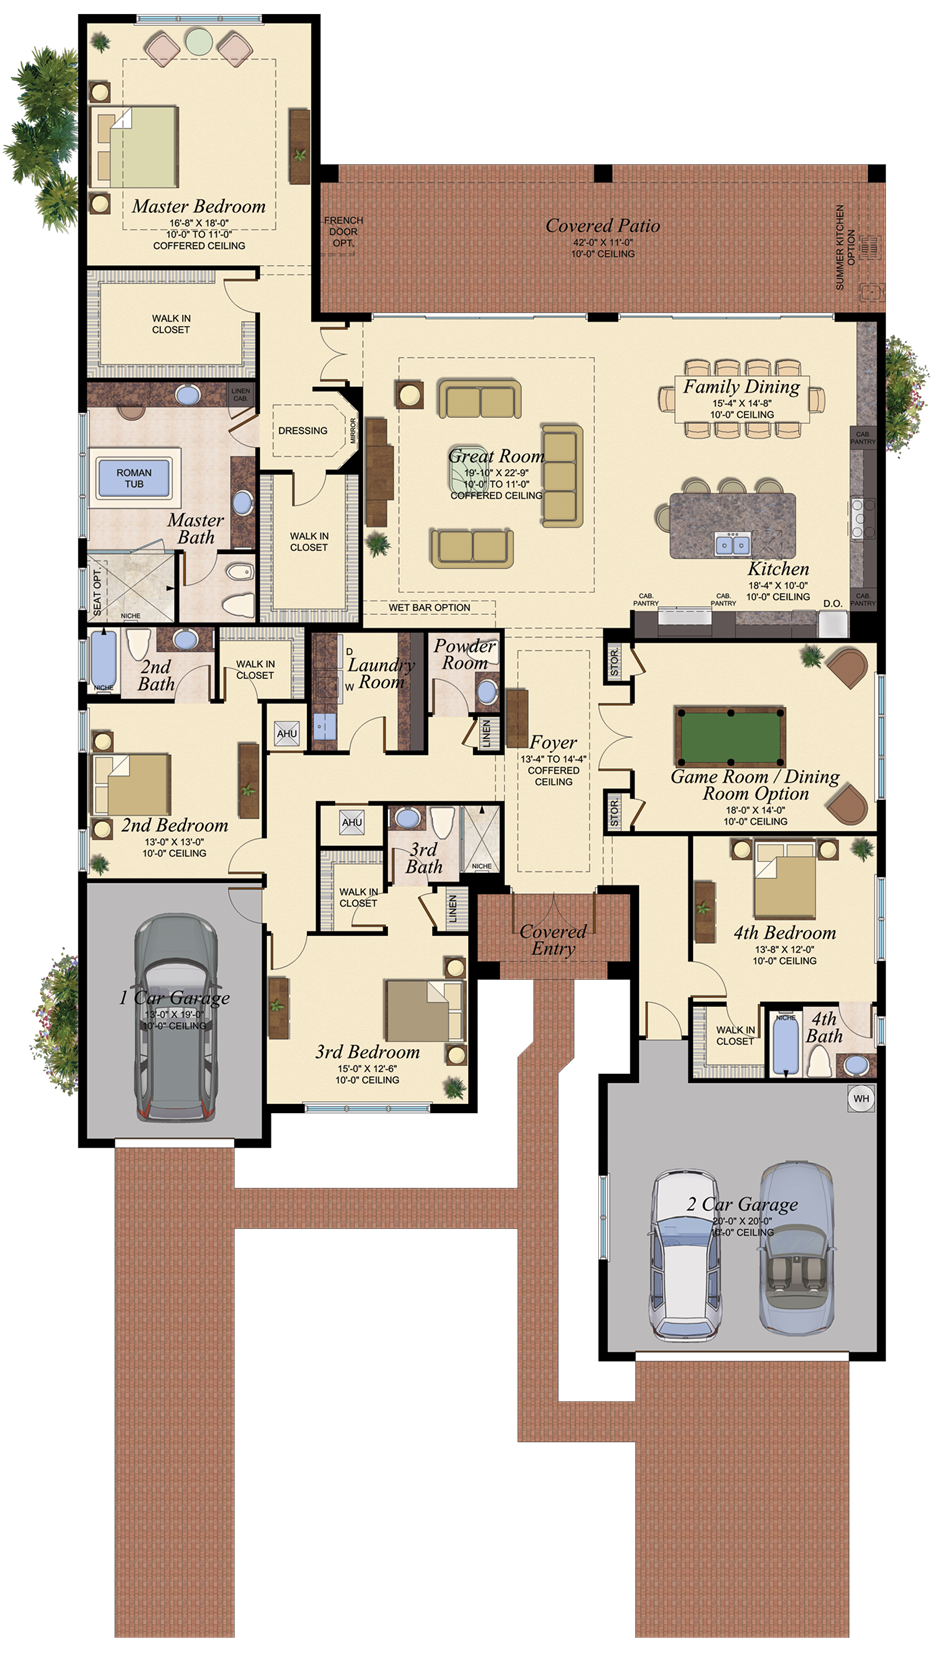 Napa 1 Floor Plan Home Design Floor Plans House Blueprints Modern House Plans